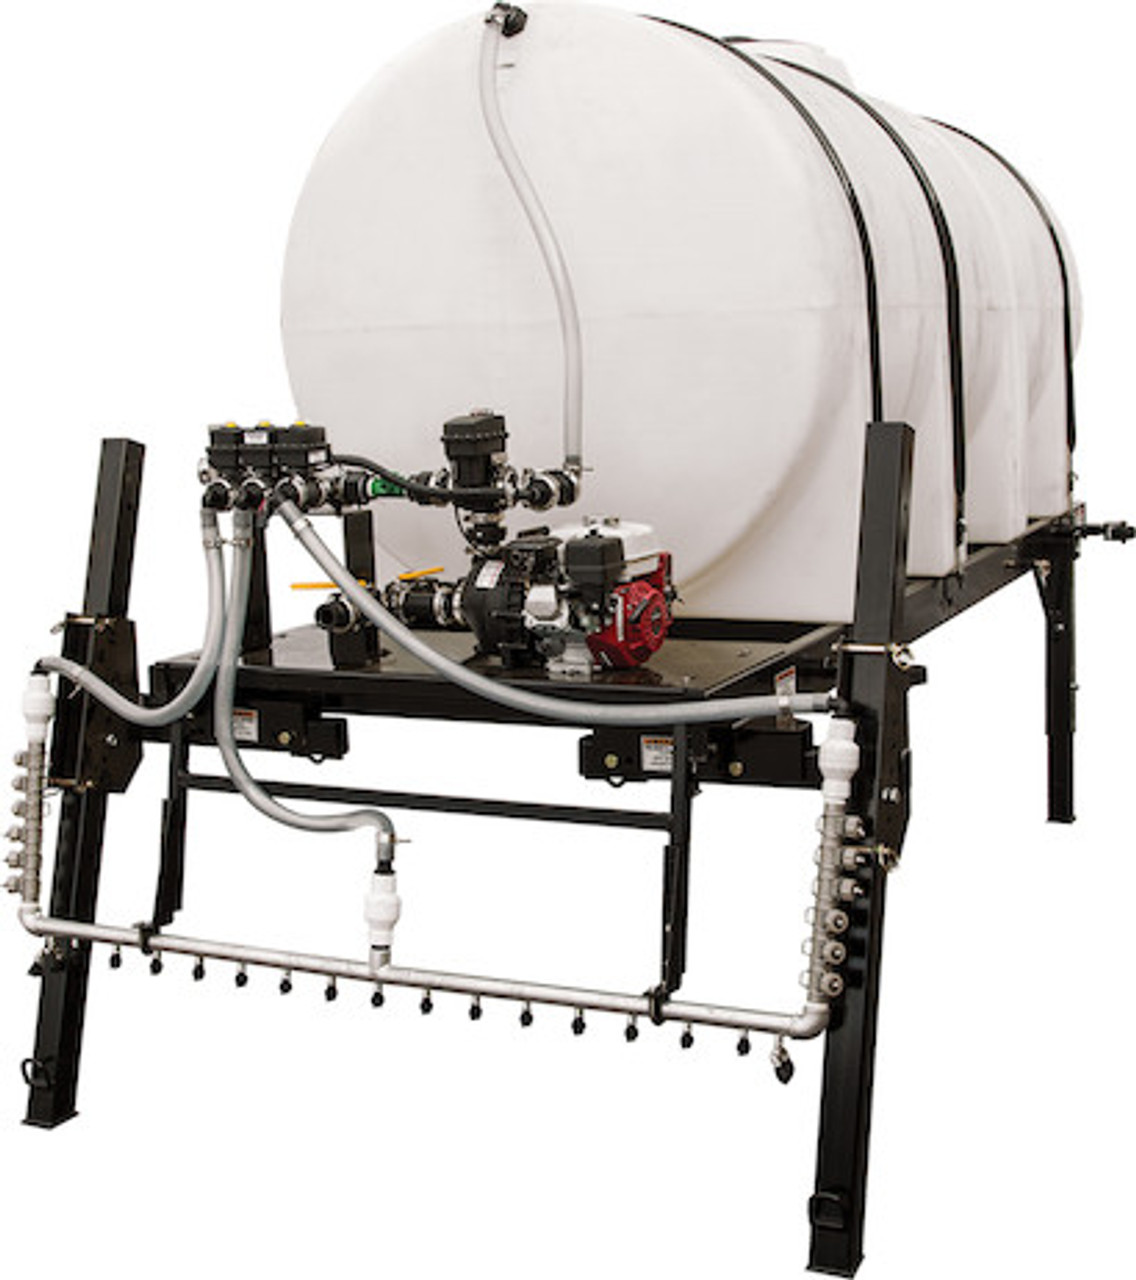 6191636 BUYERS SALTDOGG 1065 Gallon Gas-Powered Anti-Ice System With Three-Lane Spray Bar And Automatic Application Rate Control